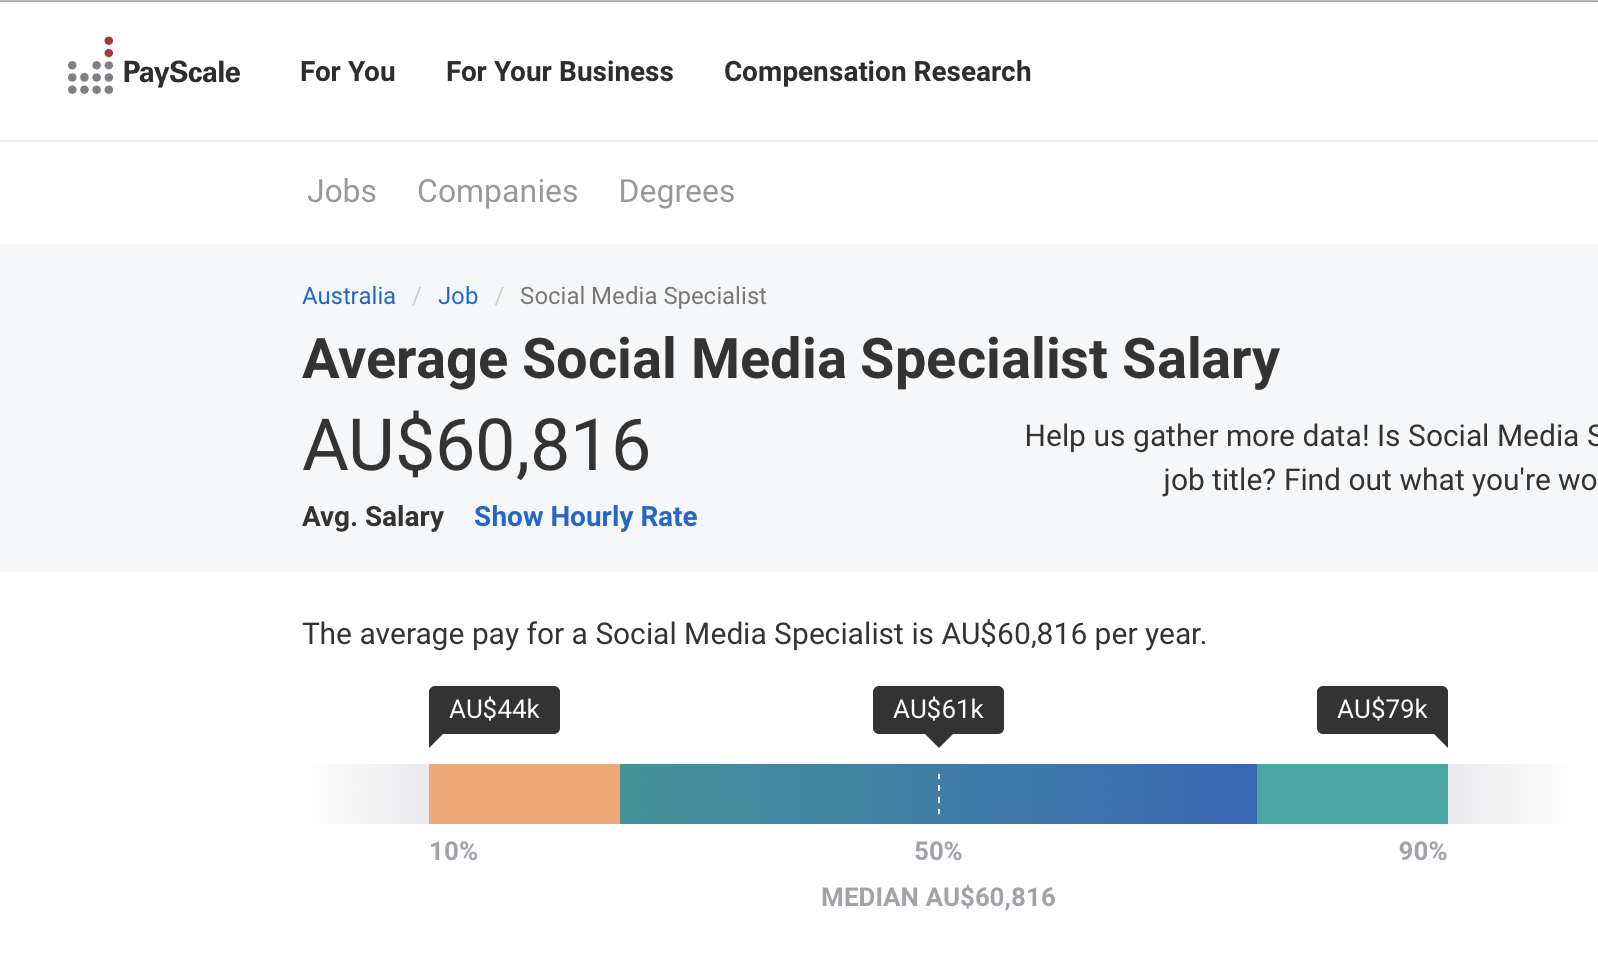 Average social media specialist salary from PayScale